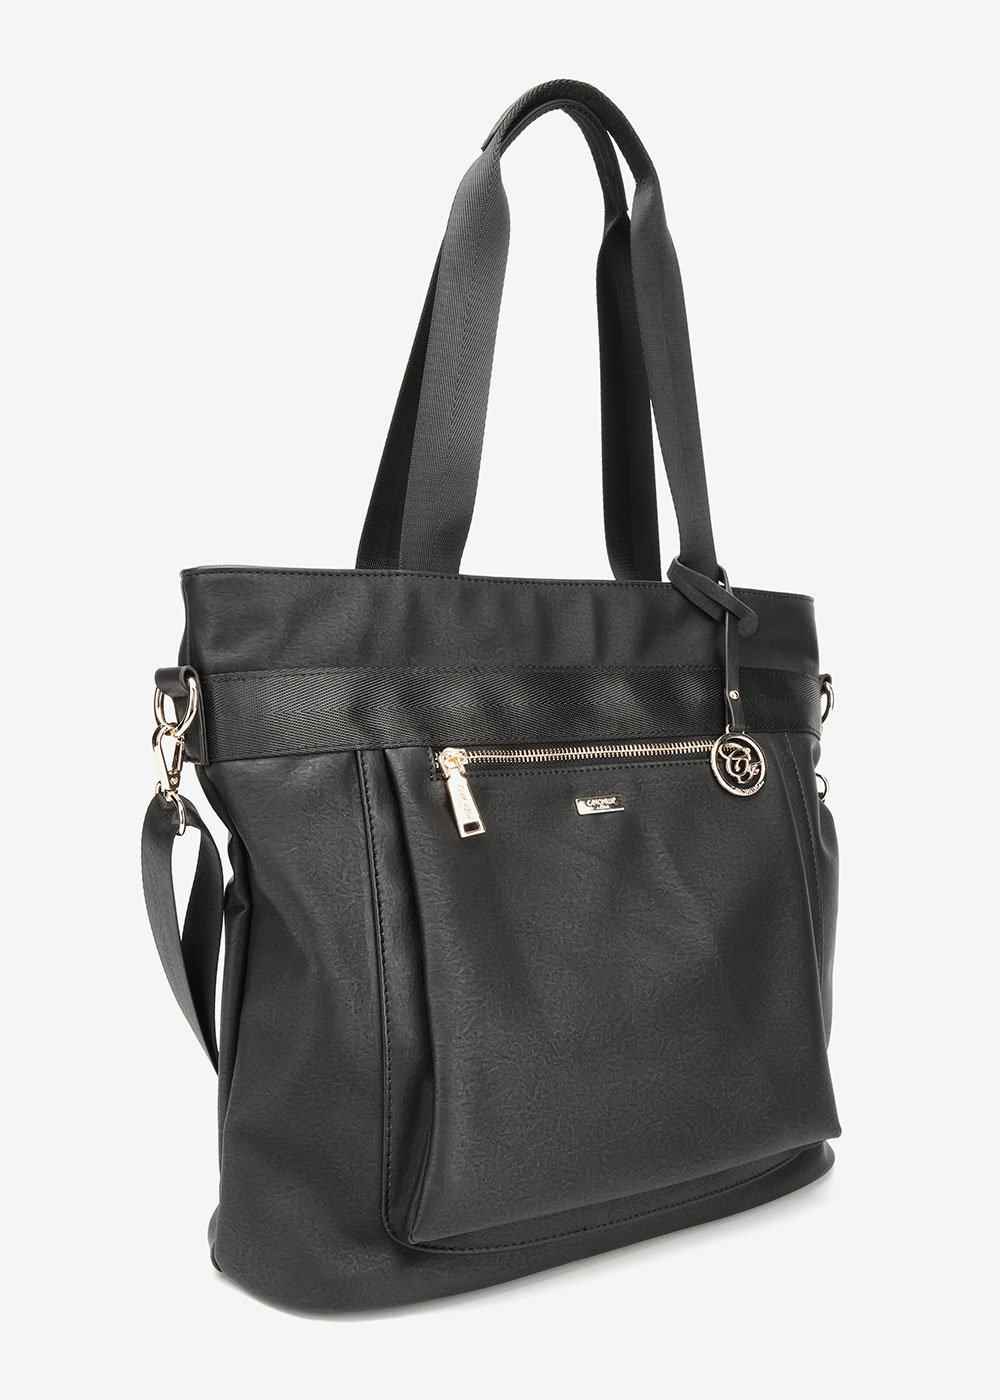 Shopping bag Becky multiscomparto - Black - Donna